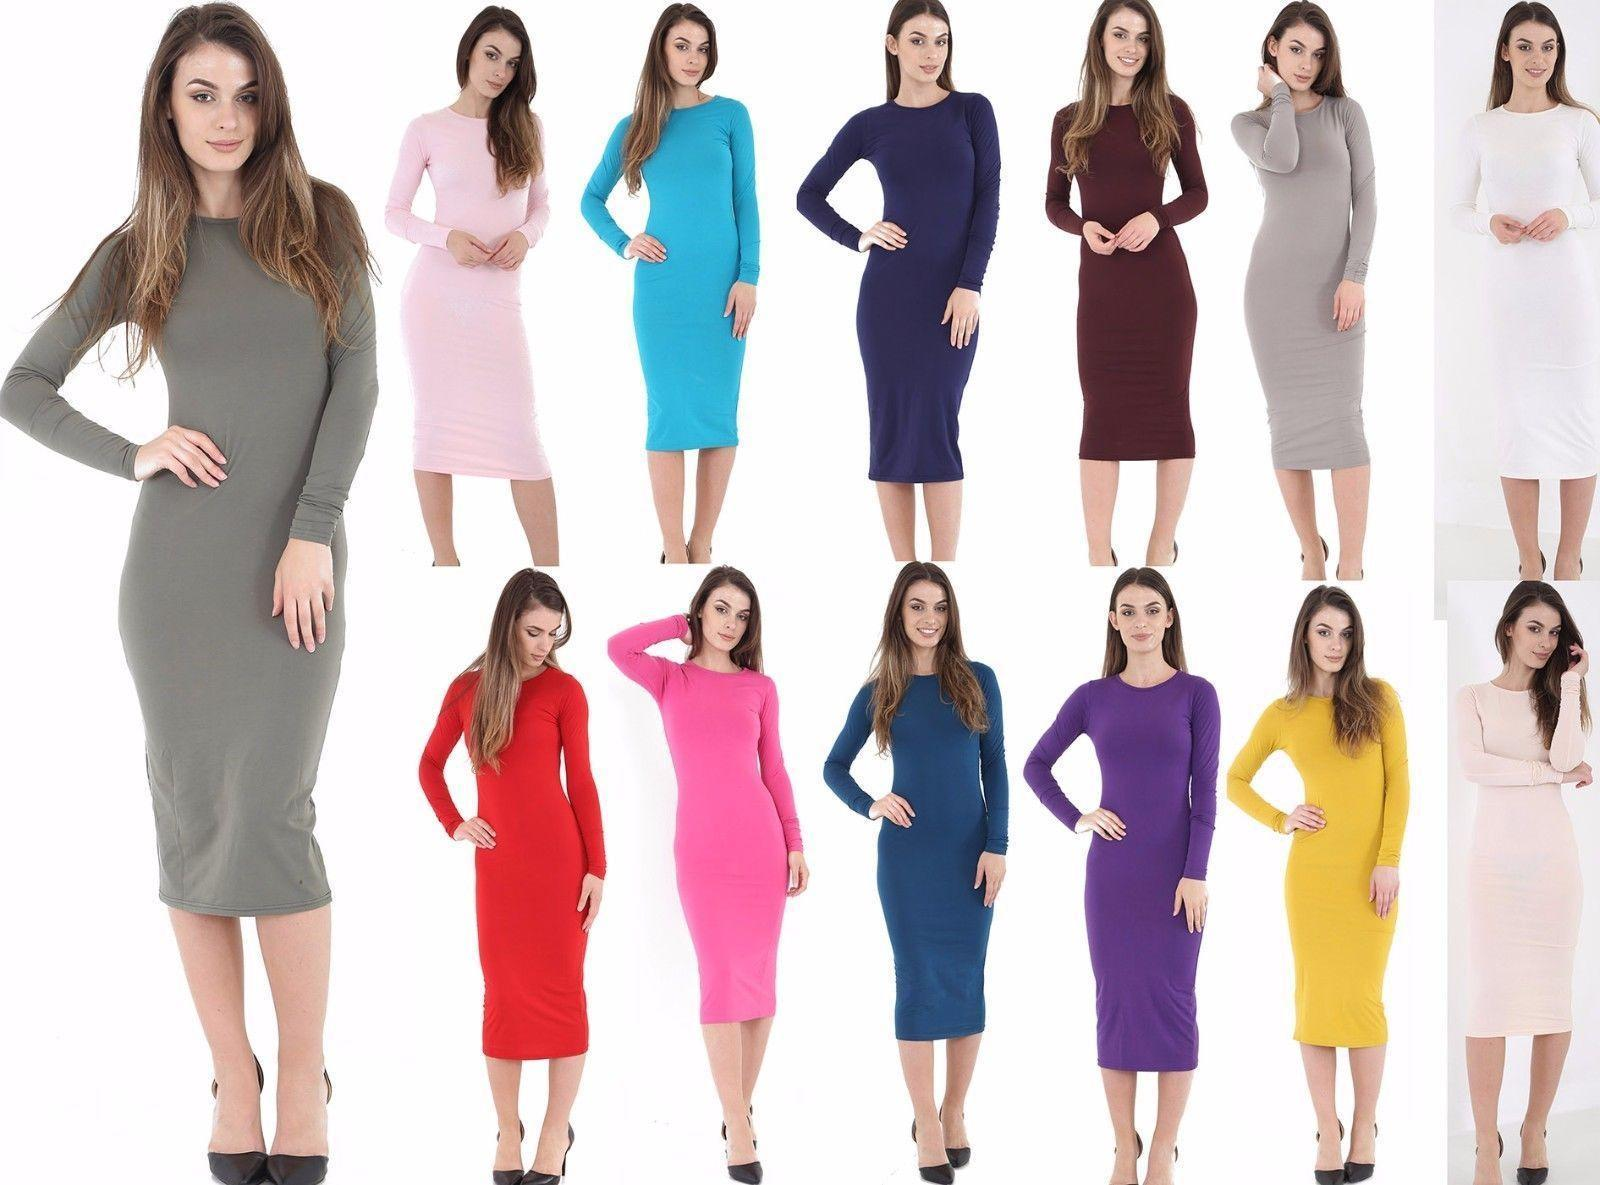 5c8655487e89 WOMENS LADIES GIRLS LONG SLEEVE MIDI DRESS STRETCH BODYCON PLAIN JERSEY  MAXI Dresses Long Sleeve White And Gold Dress Women Floral Dress From  Wallpaperroll